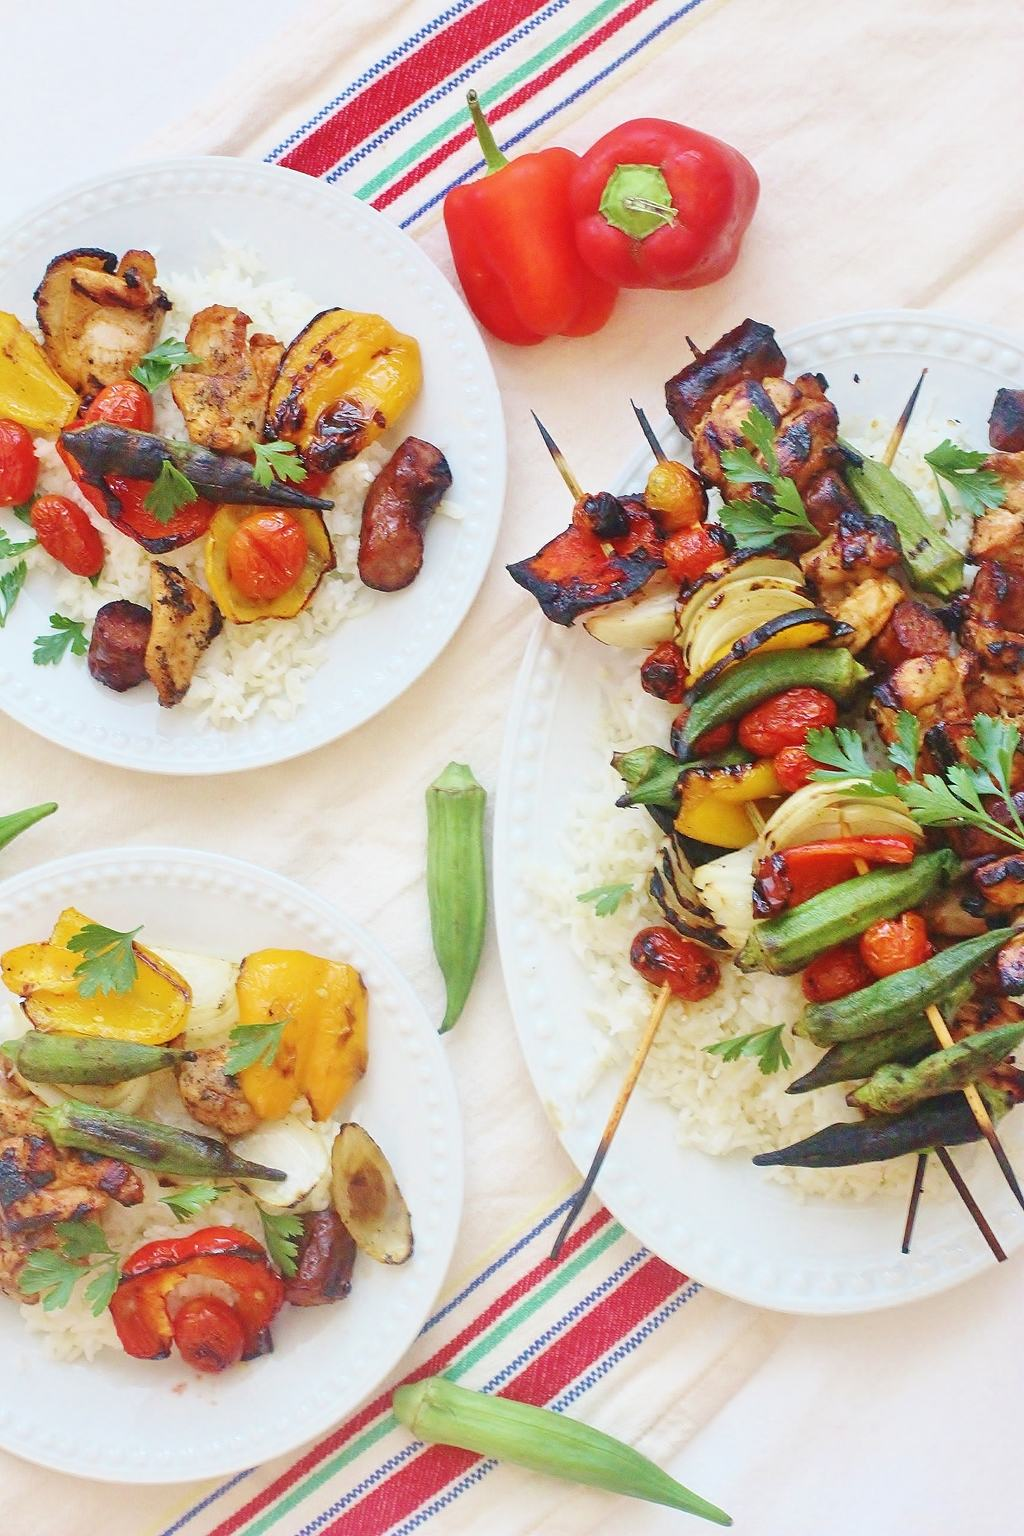 Weeknight Dinner Recipes Chicken and Sausage Gumbo Skewers by Syrup and Biscuits